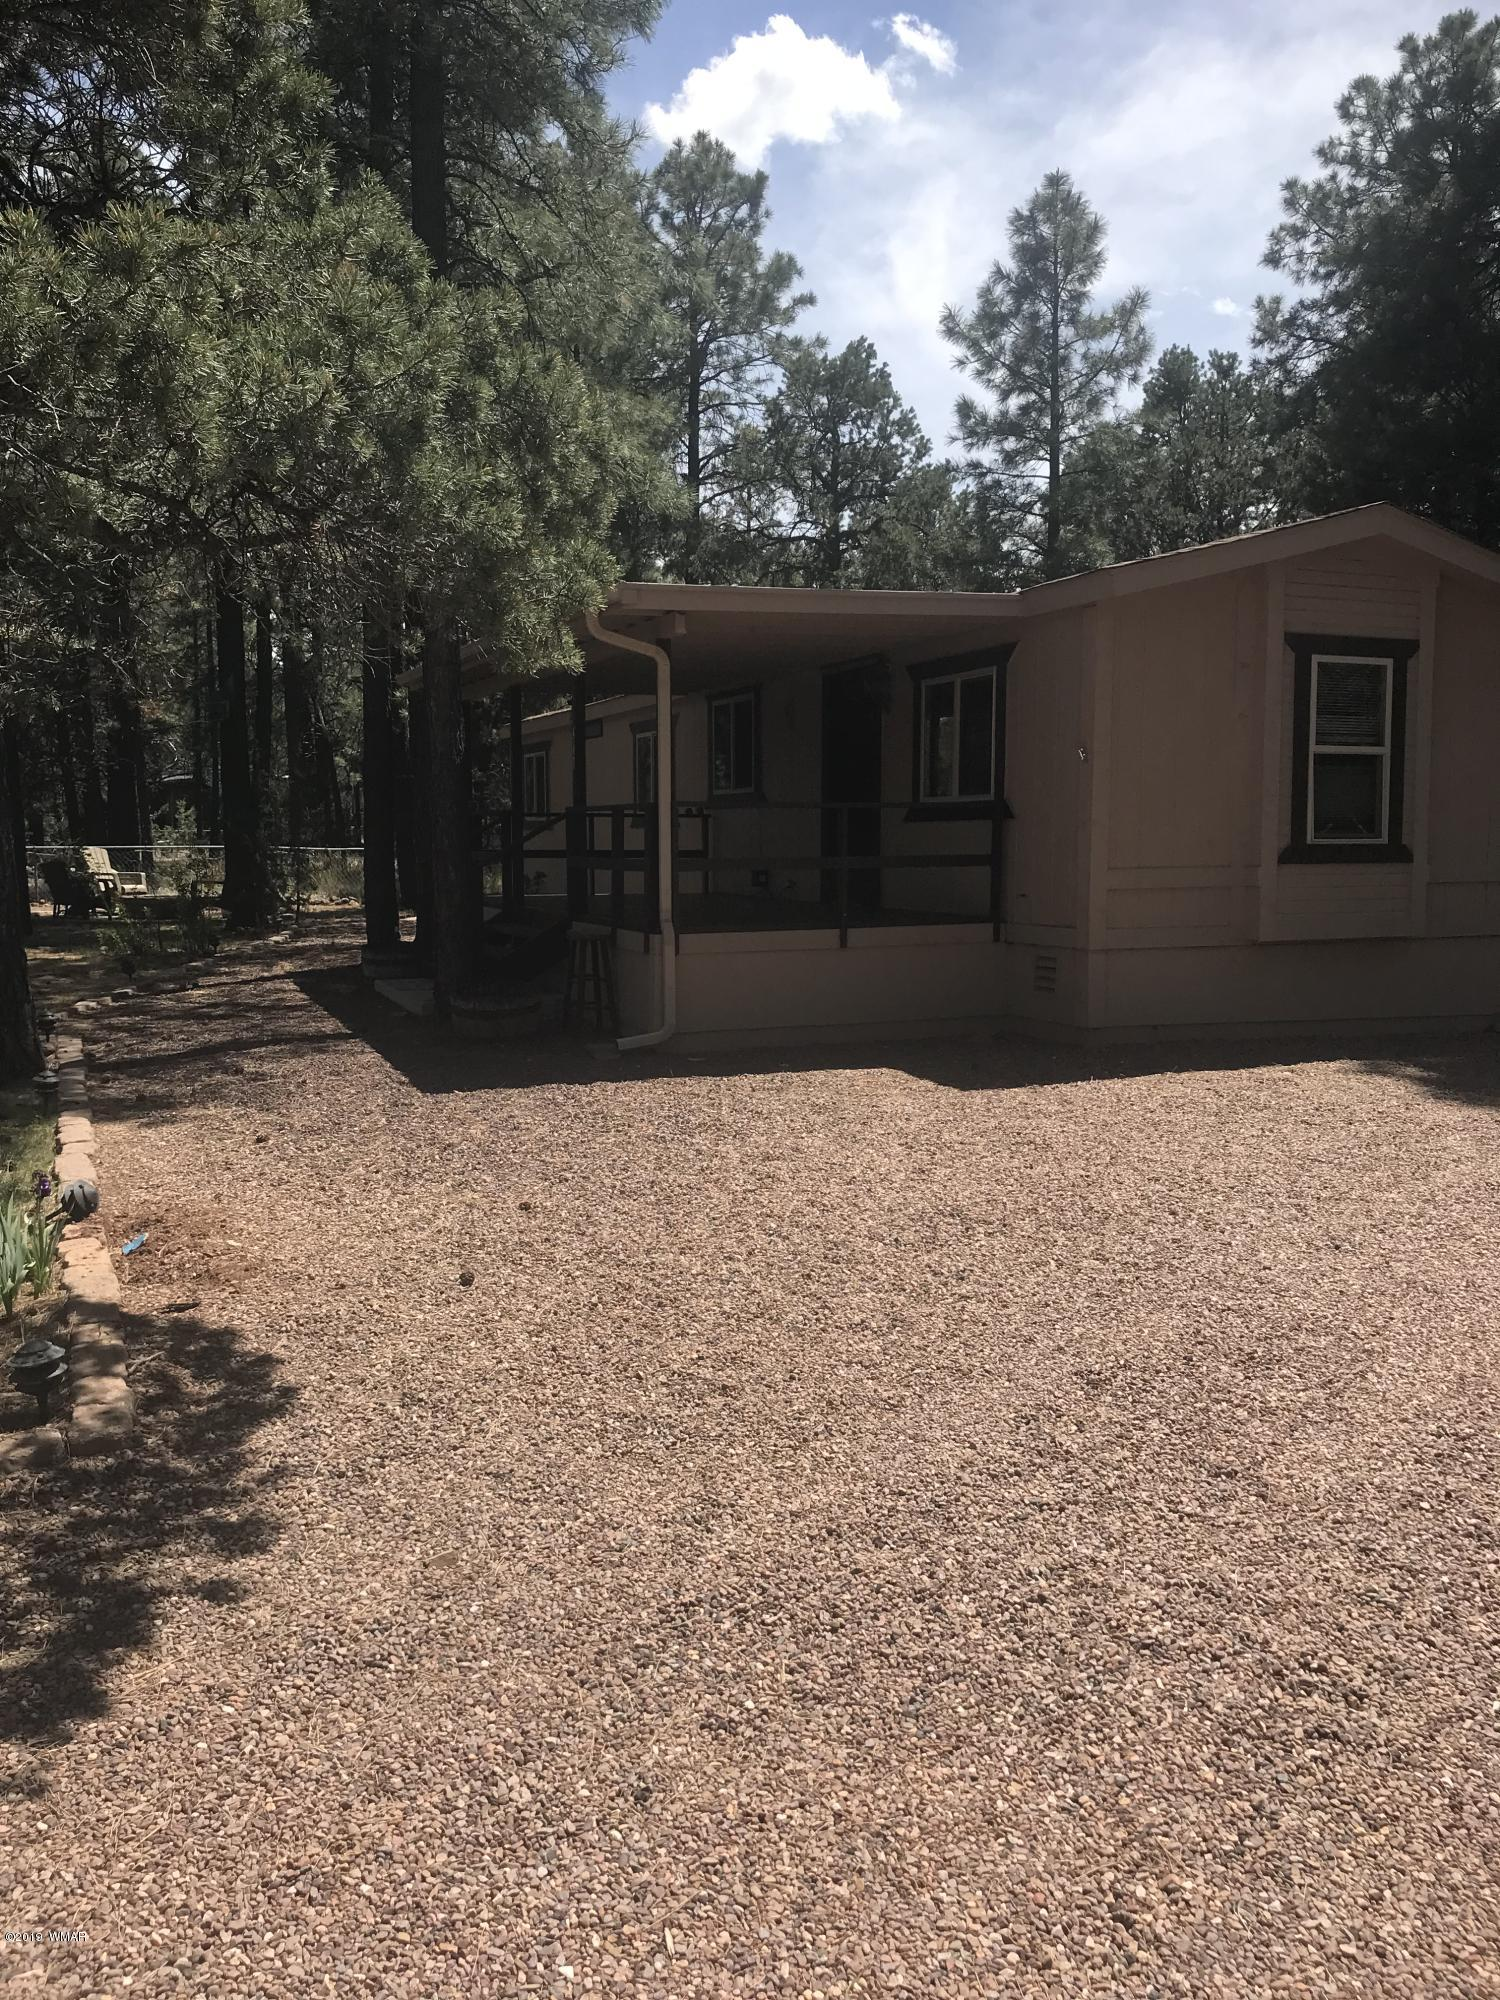 Nice 2 bedroom 1 bath mobile in the heart of Overgaard nestled in the tall pines.  Priced to sell.